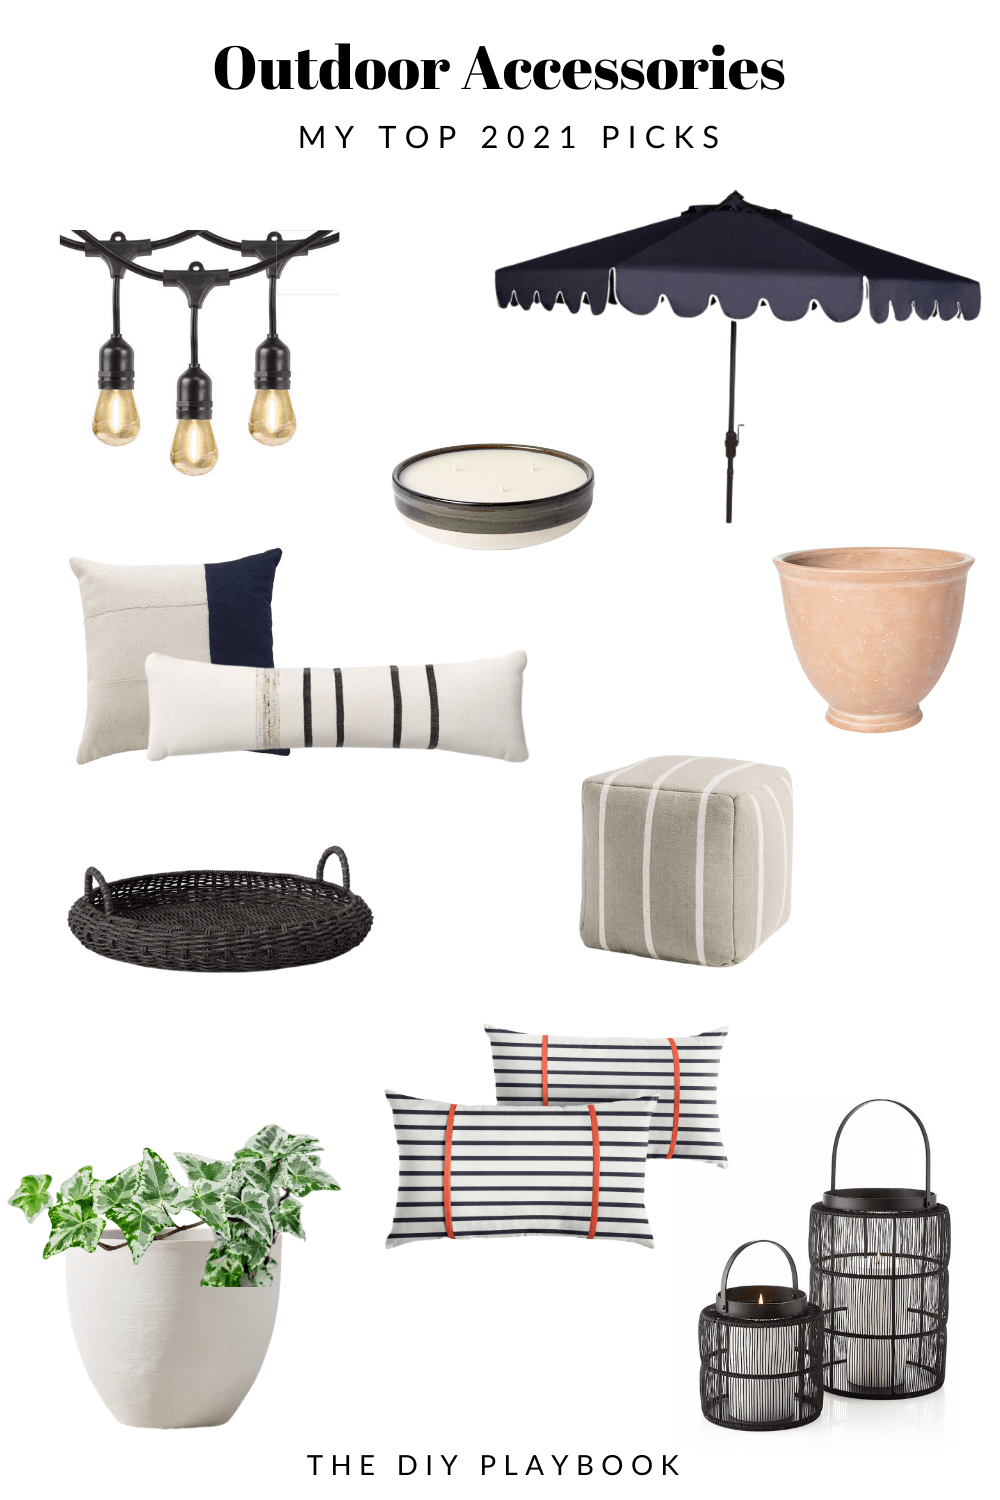 My favorite outdoor accessories for the summertime patio